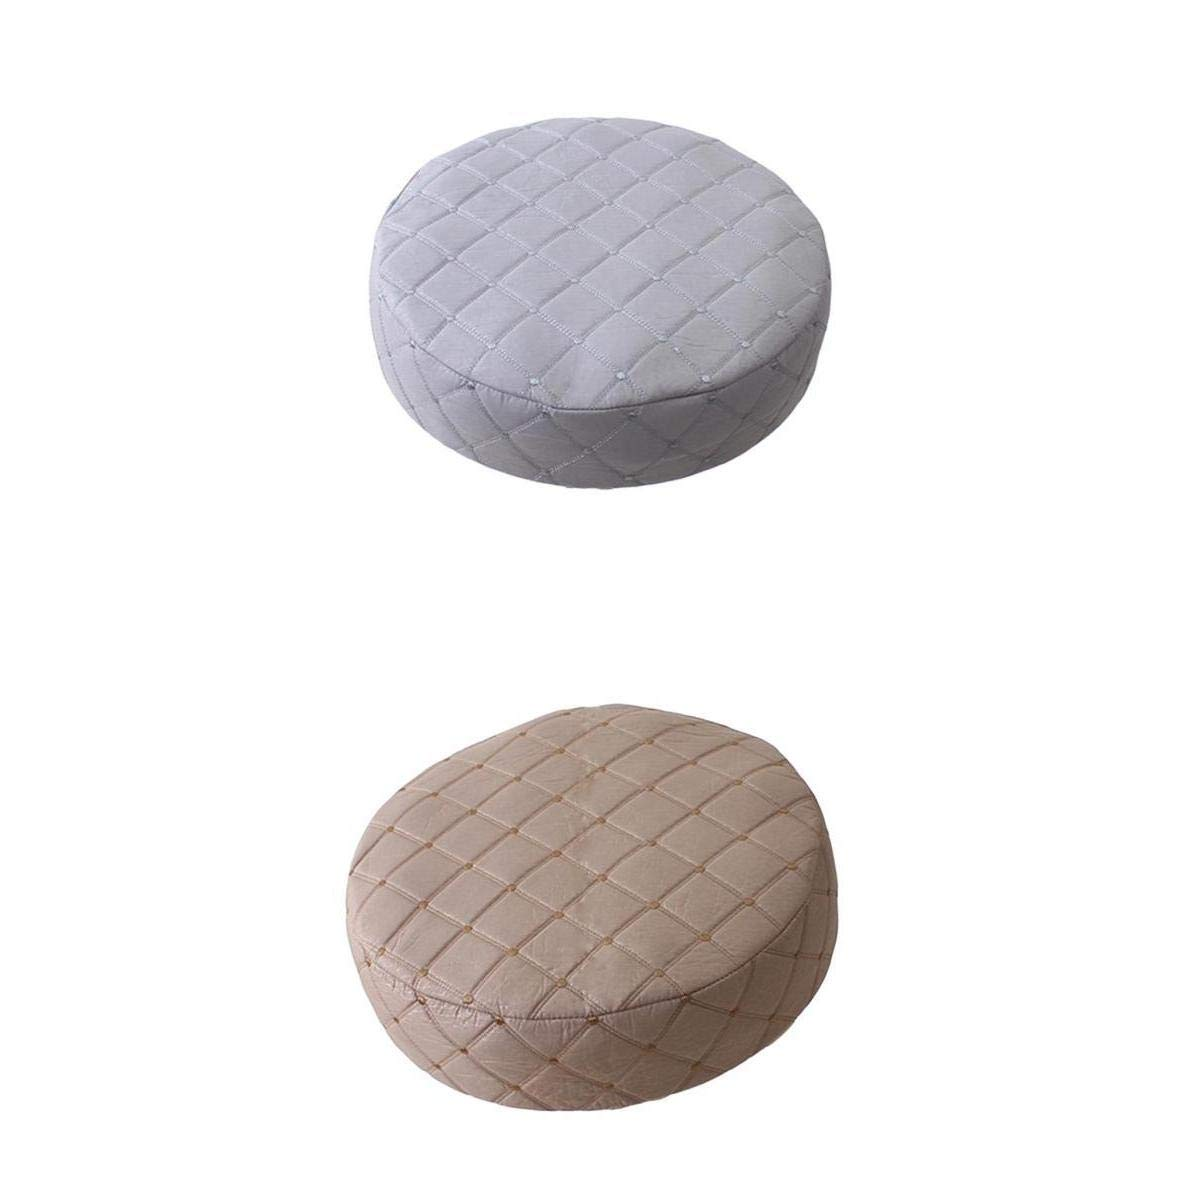 D DOLITY 35cm Bar Stool Cover Round Lift Chair Seat Sleeve Cushion Barstools Slipcover Band Height 10cm -2pcs Gray&Beige